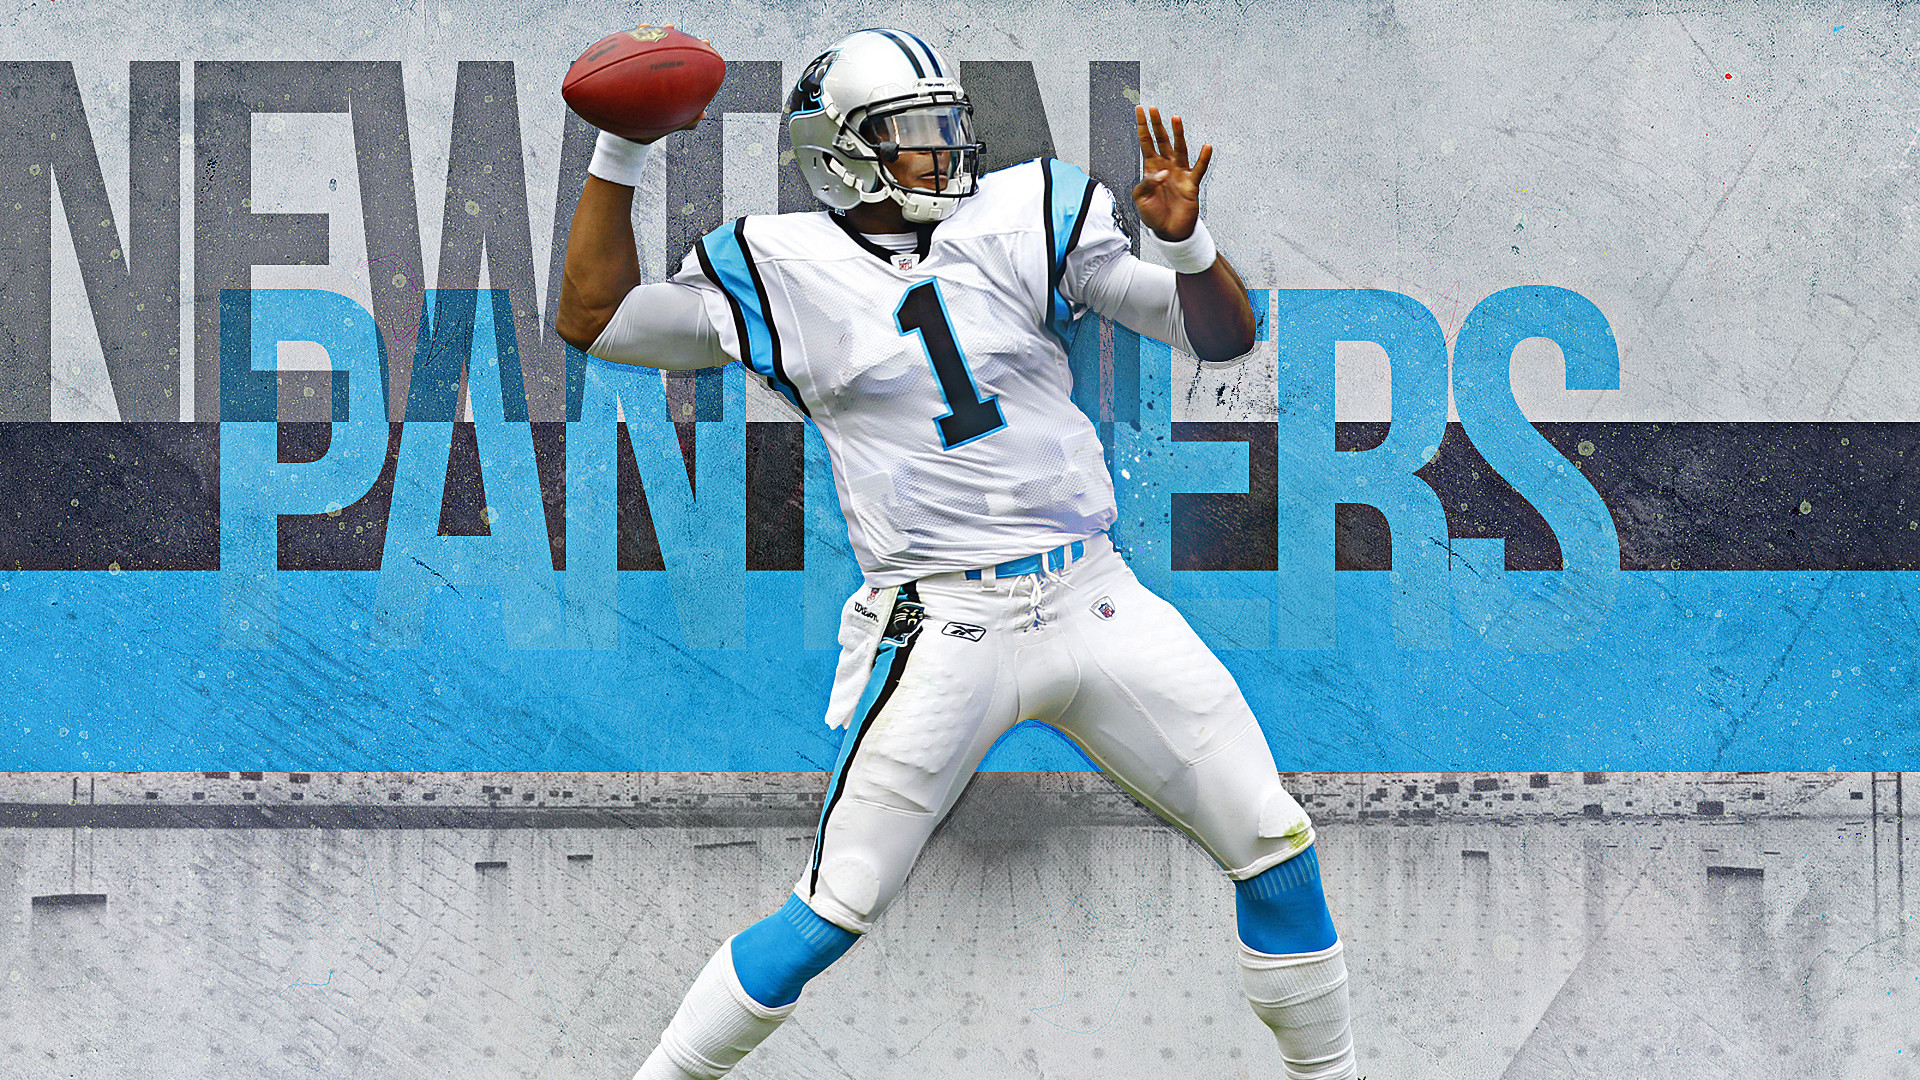 Cam Newton Wallpapers | HD Wallpapers Early